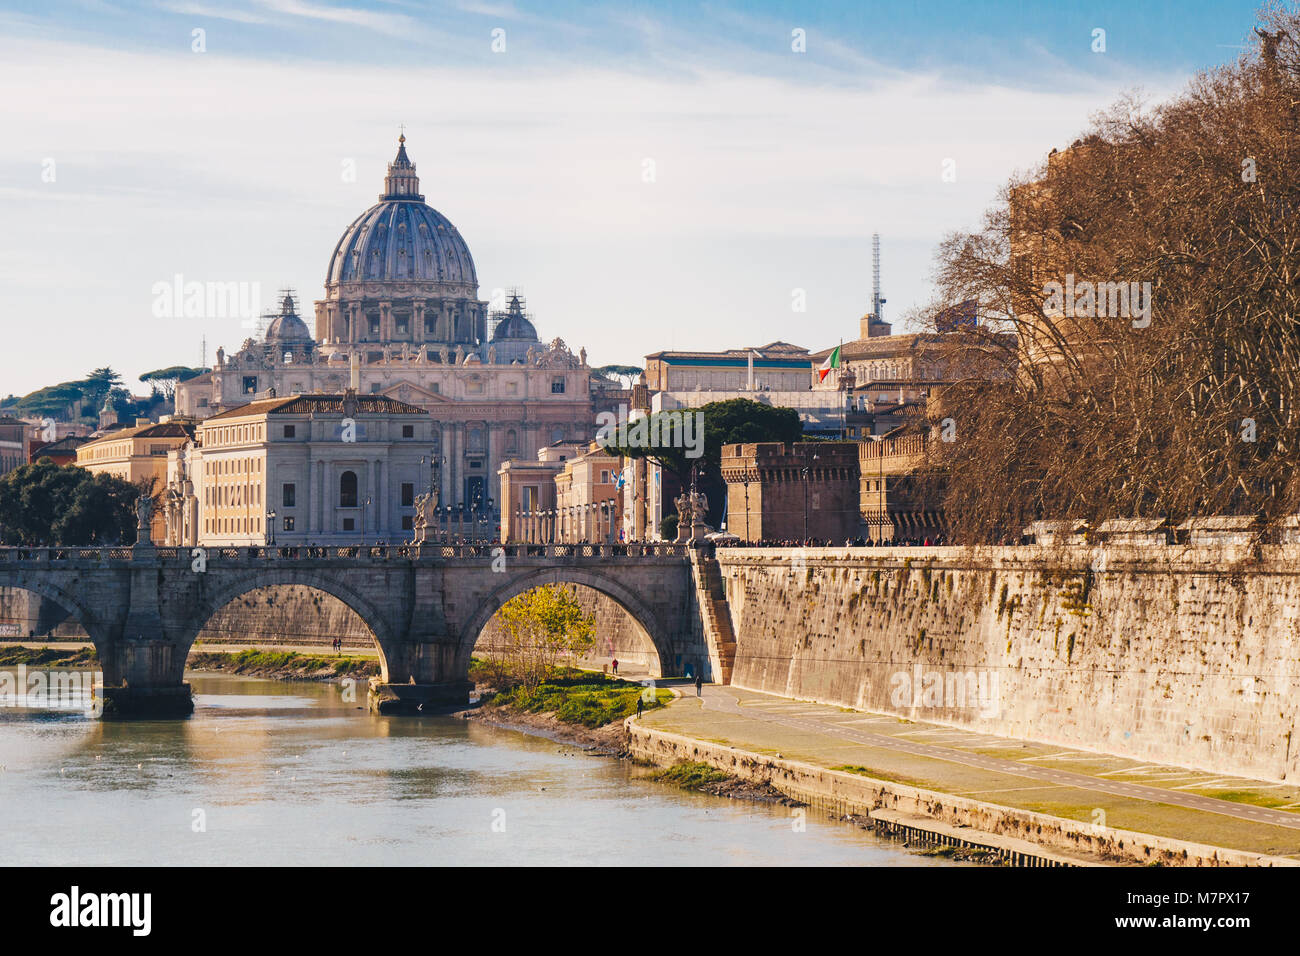 View of the Basilica St Peter in Rome, Italy - Stock Image